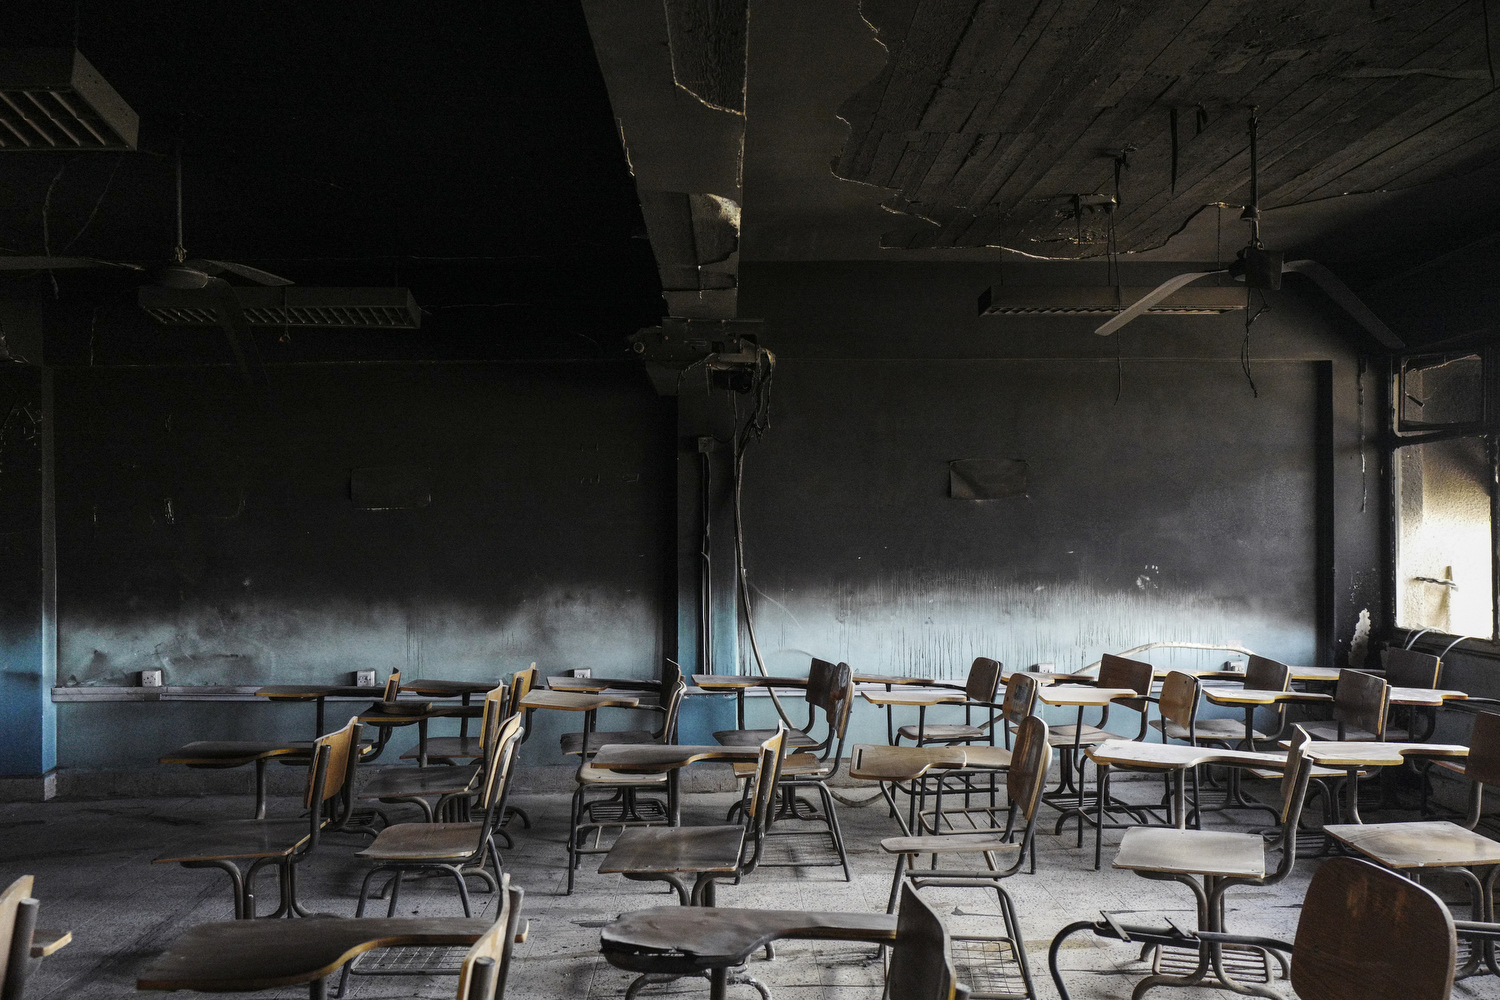 2017. Mosul. Iraq. A burned classroom in Mosul University.